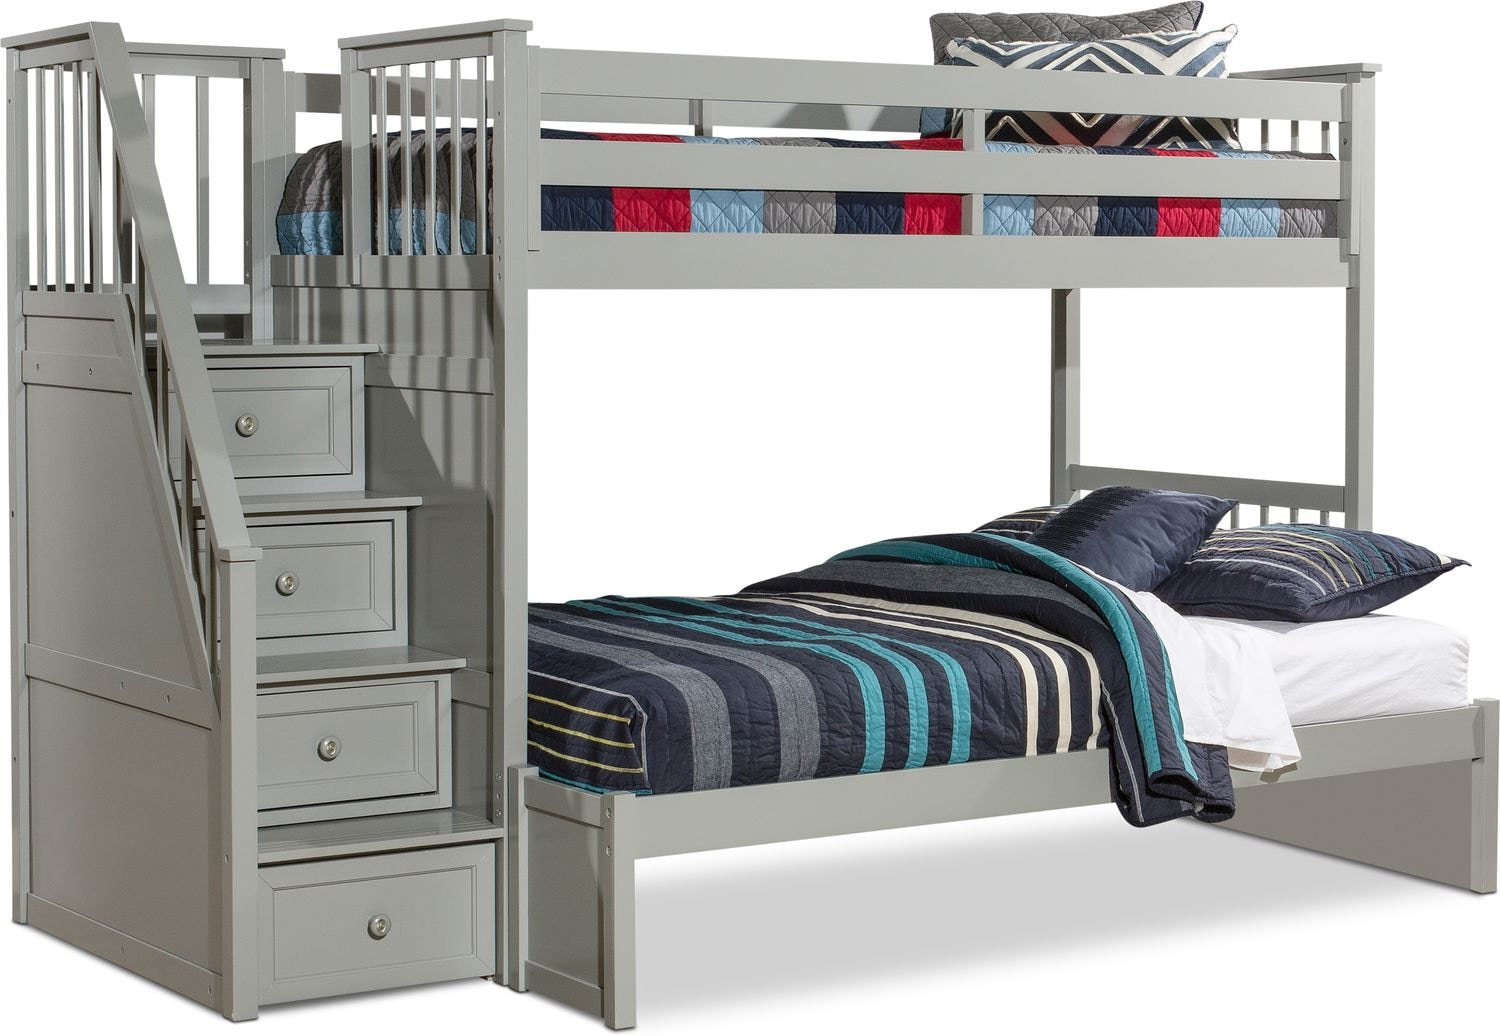 Today 2020 07 16 Single Loft Beds With Stairs Best Ideas For Us